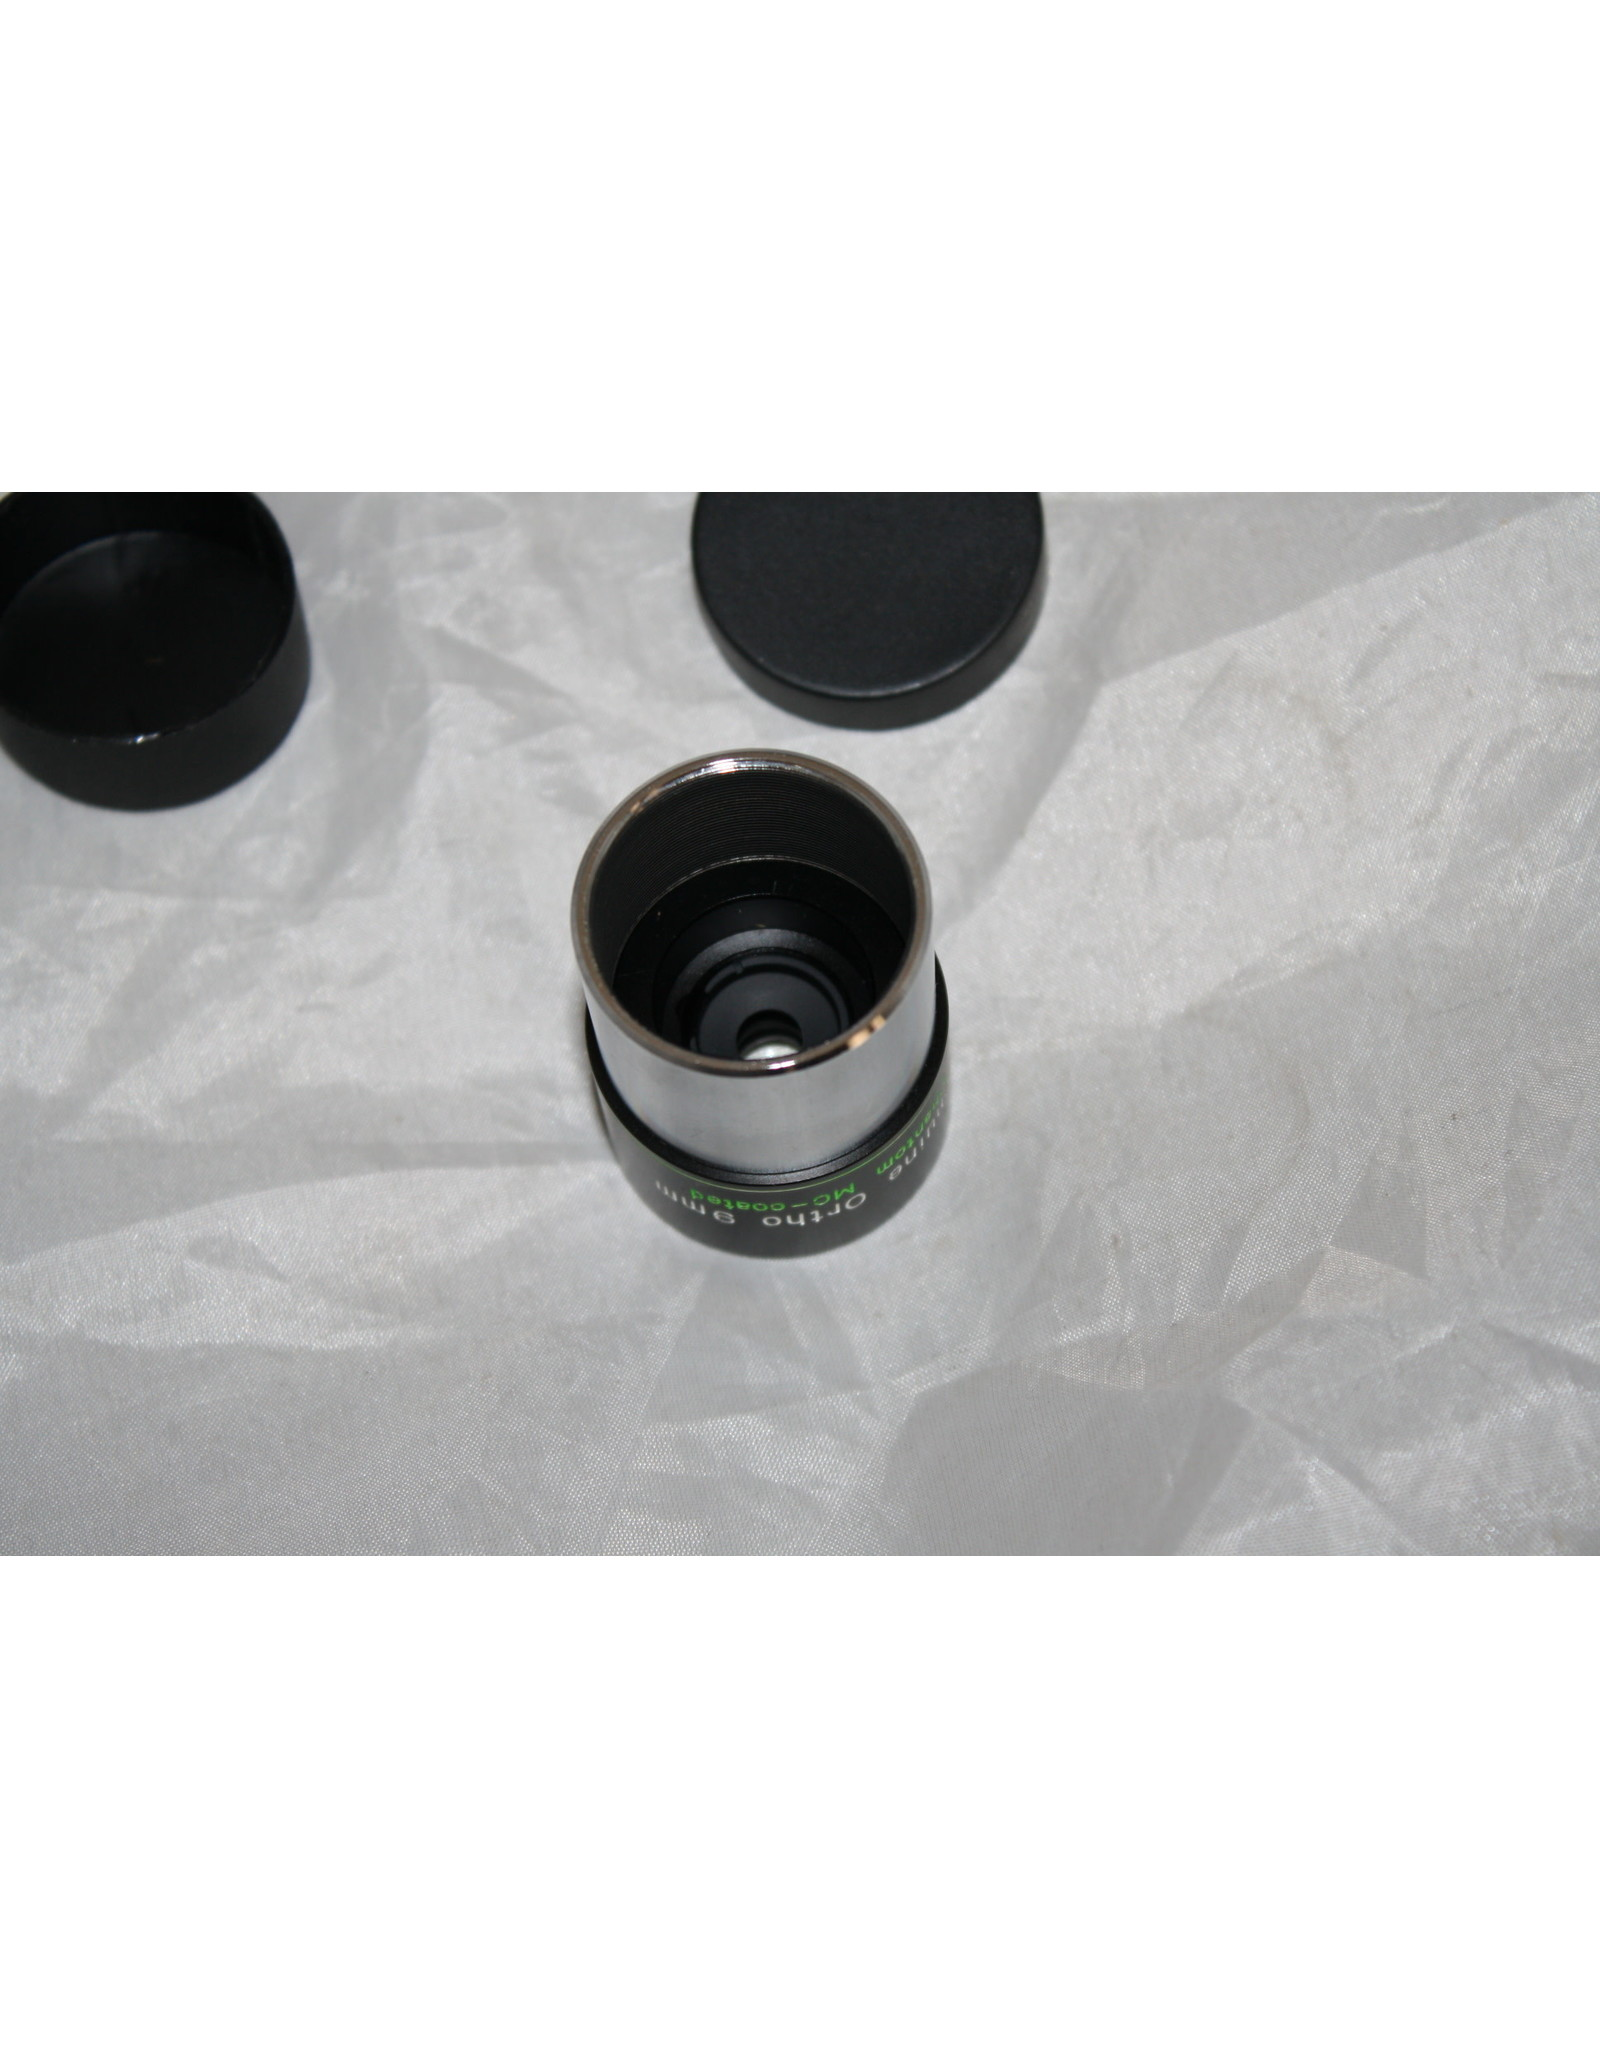 """Baader 1.25"""" Genuine Orthoscopic Eyepiece - 9mm # GO-9 2404209 (Pre-owned)"""